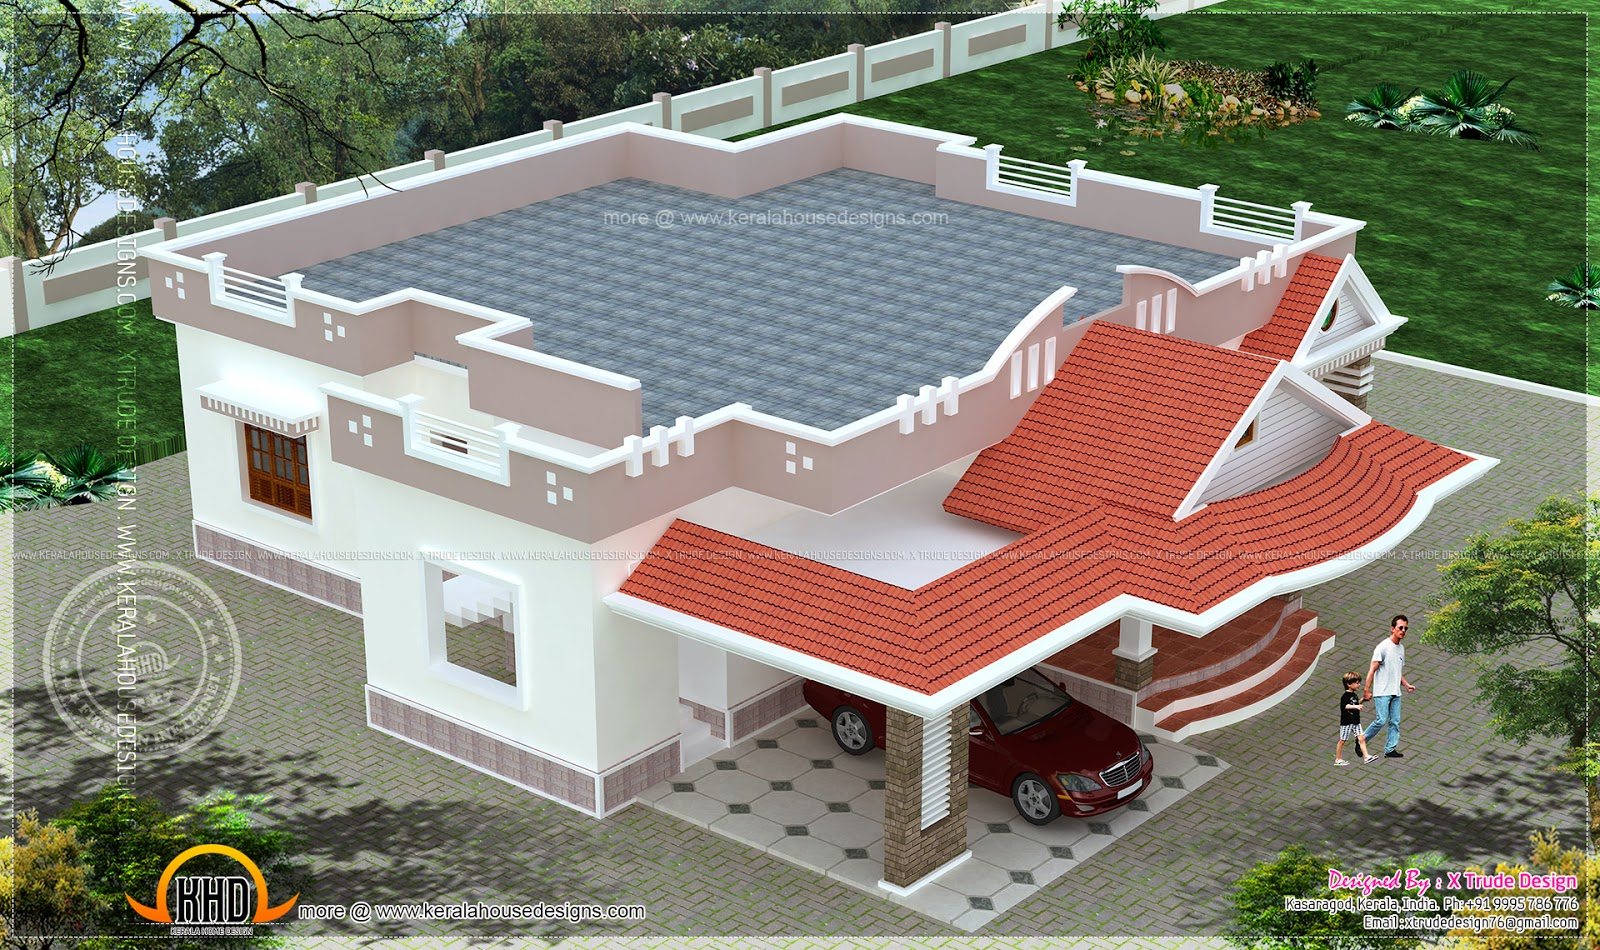 Vastu House Plans For West Facing as well Barndominium Floor Plans 30x50 likewise Homes Floor Plans 24 X 40 as well 30 X 60 House Plan Map besides Palolem Beach Goa Apartments Floorplans. on floor plans for 30 x 40 house